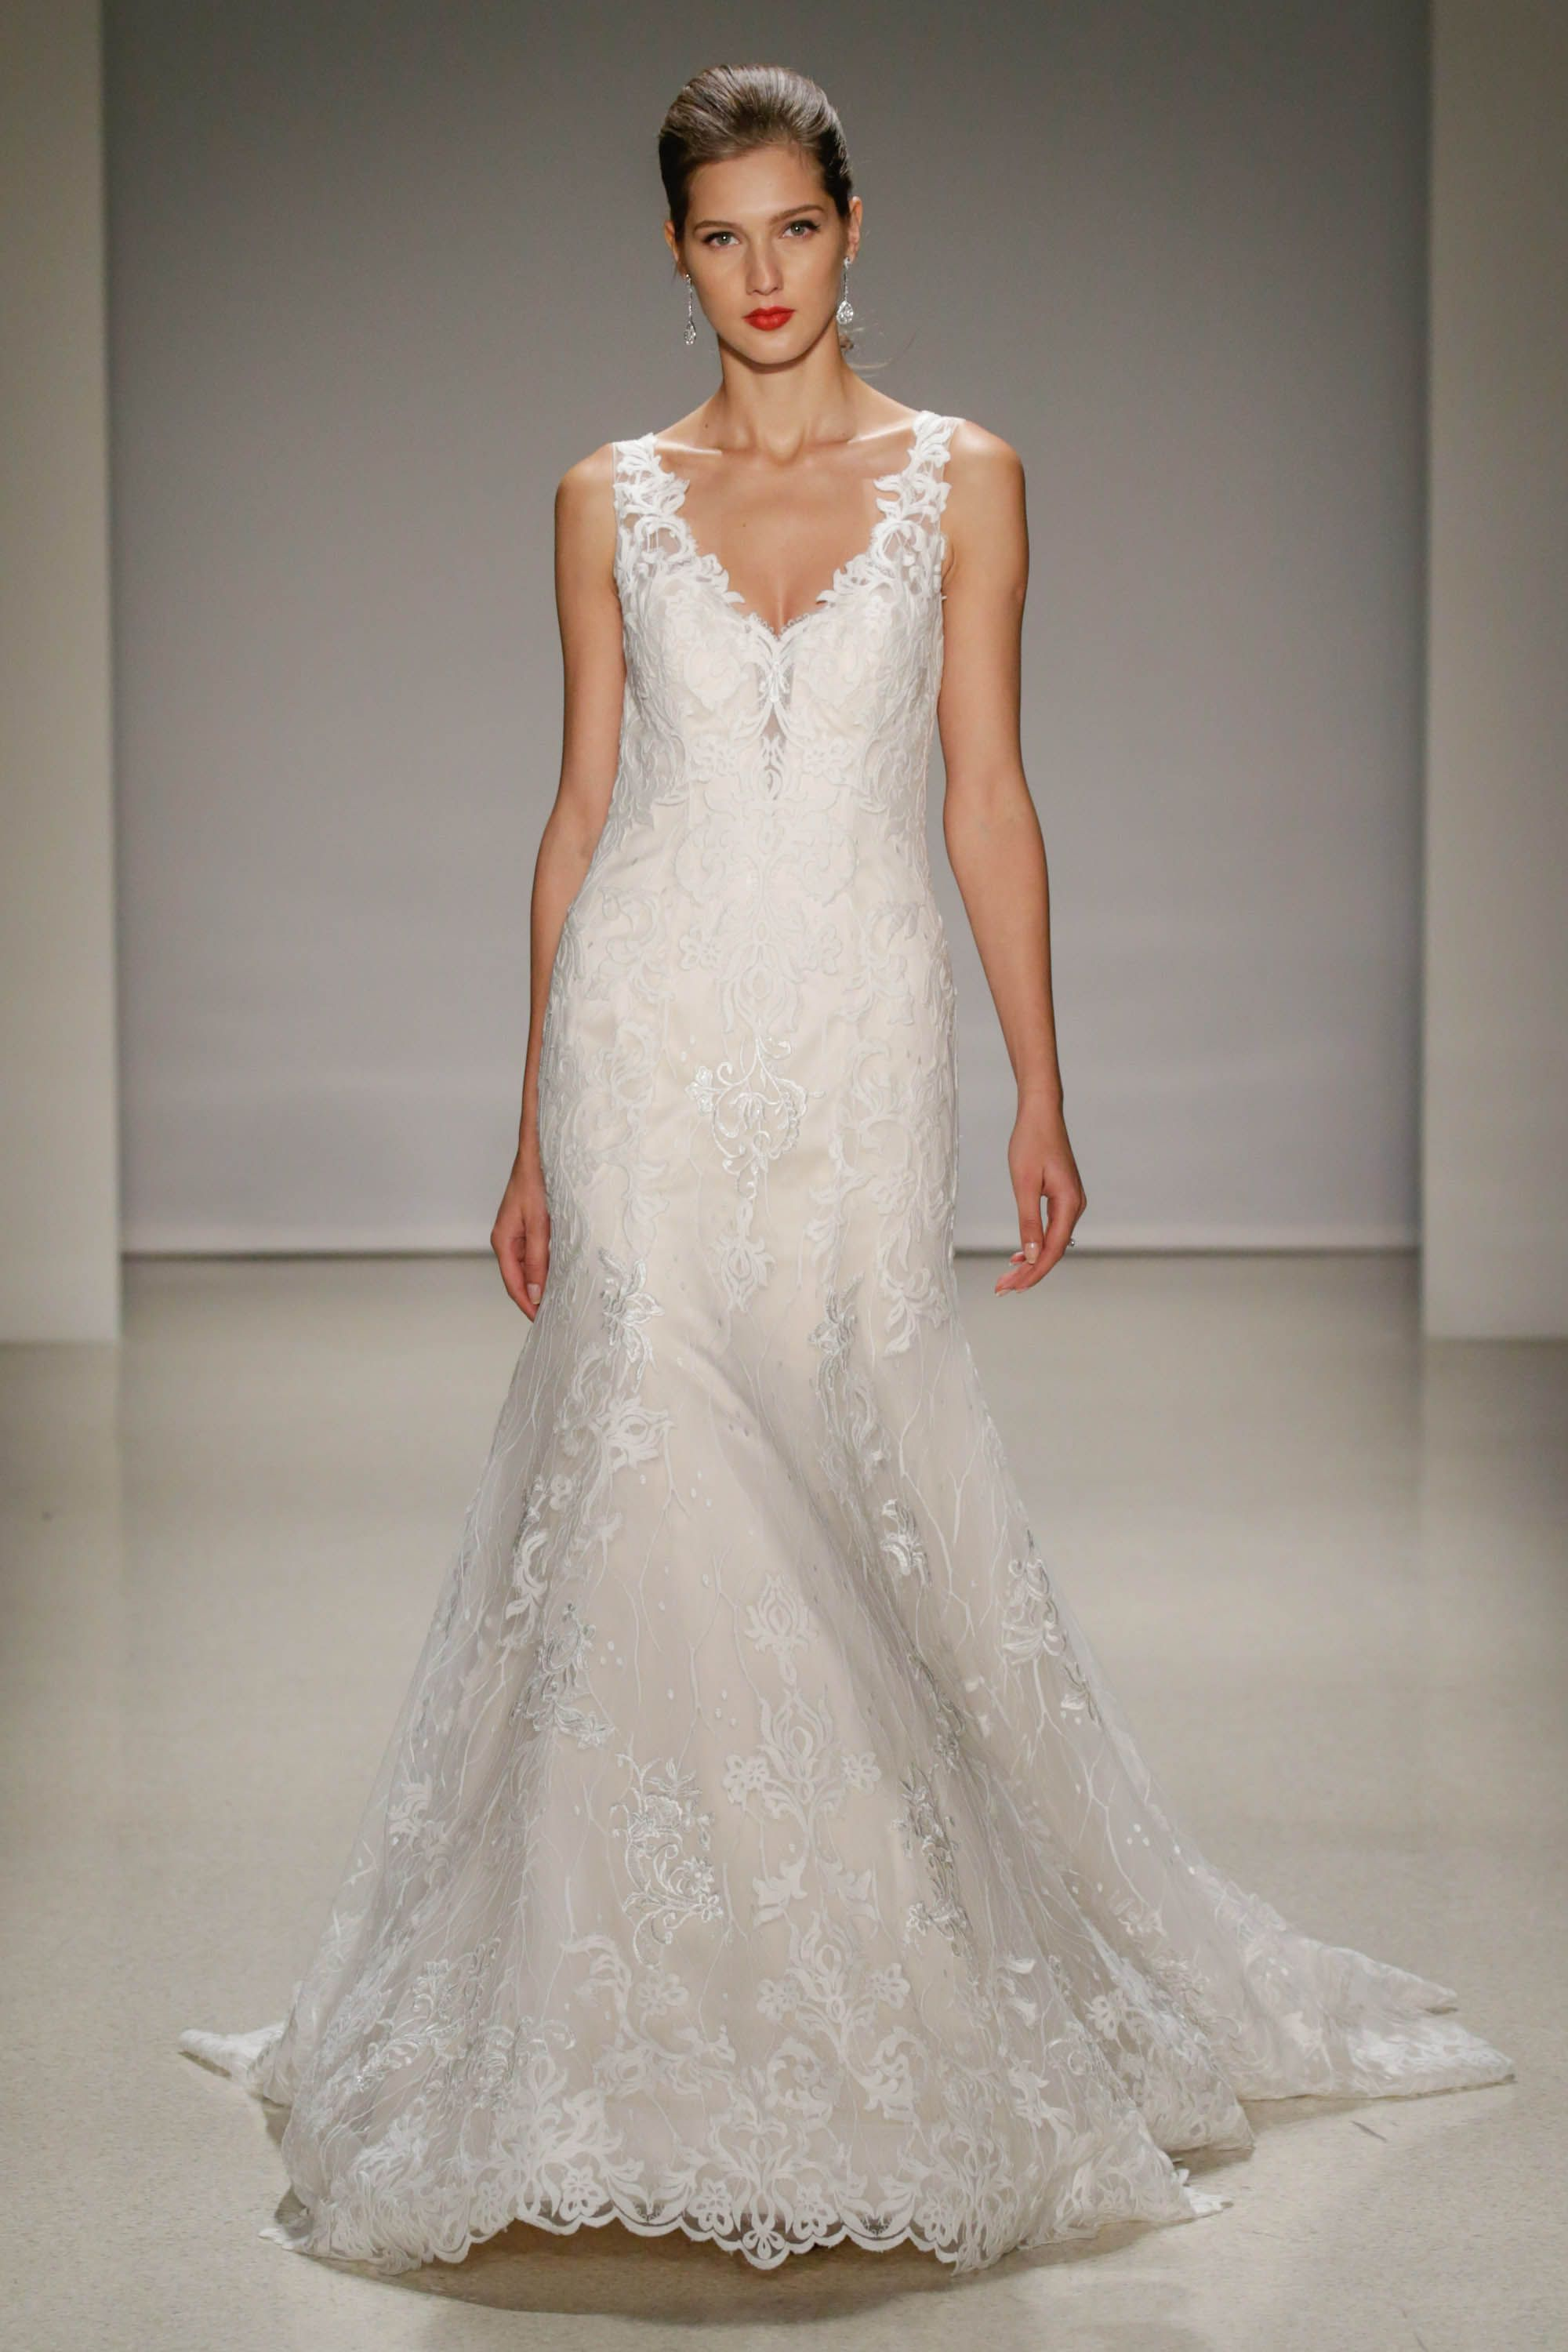 Lace fit and flare wedding dress with low back | Products I Love ...